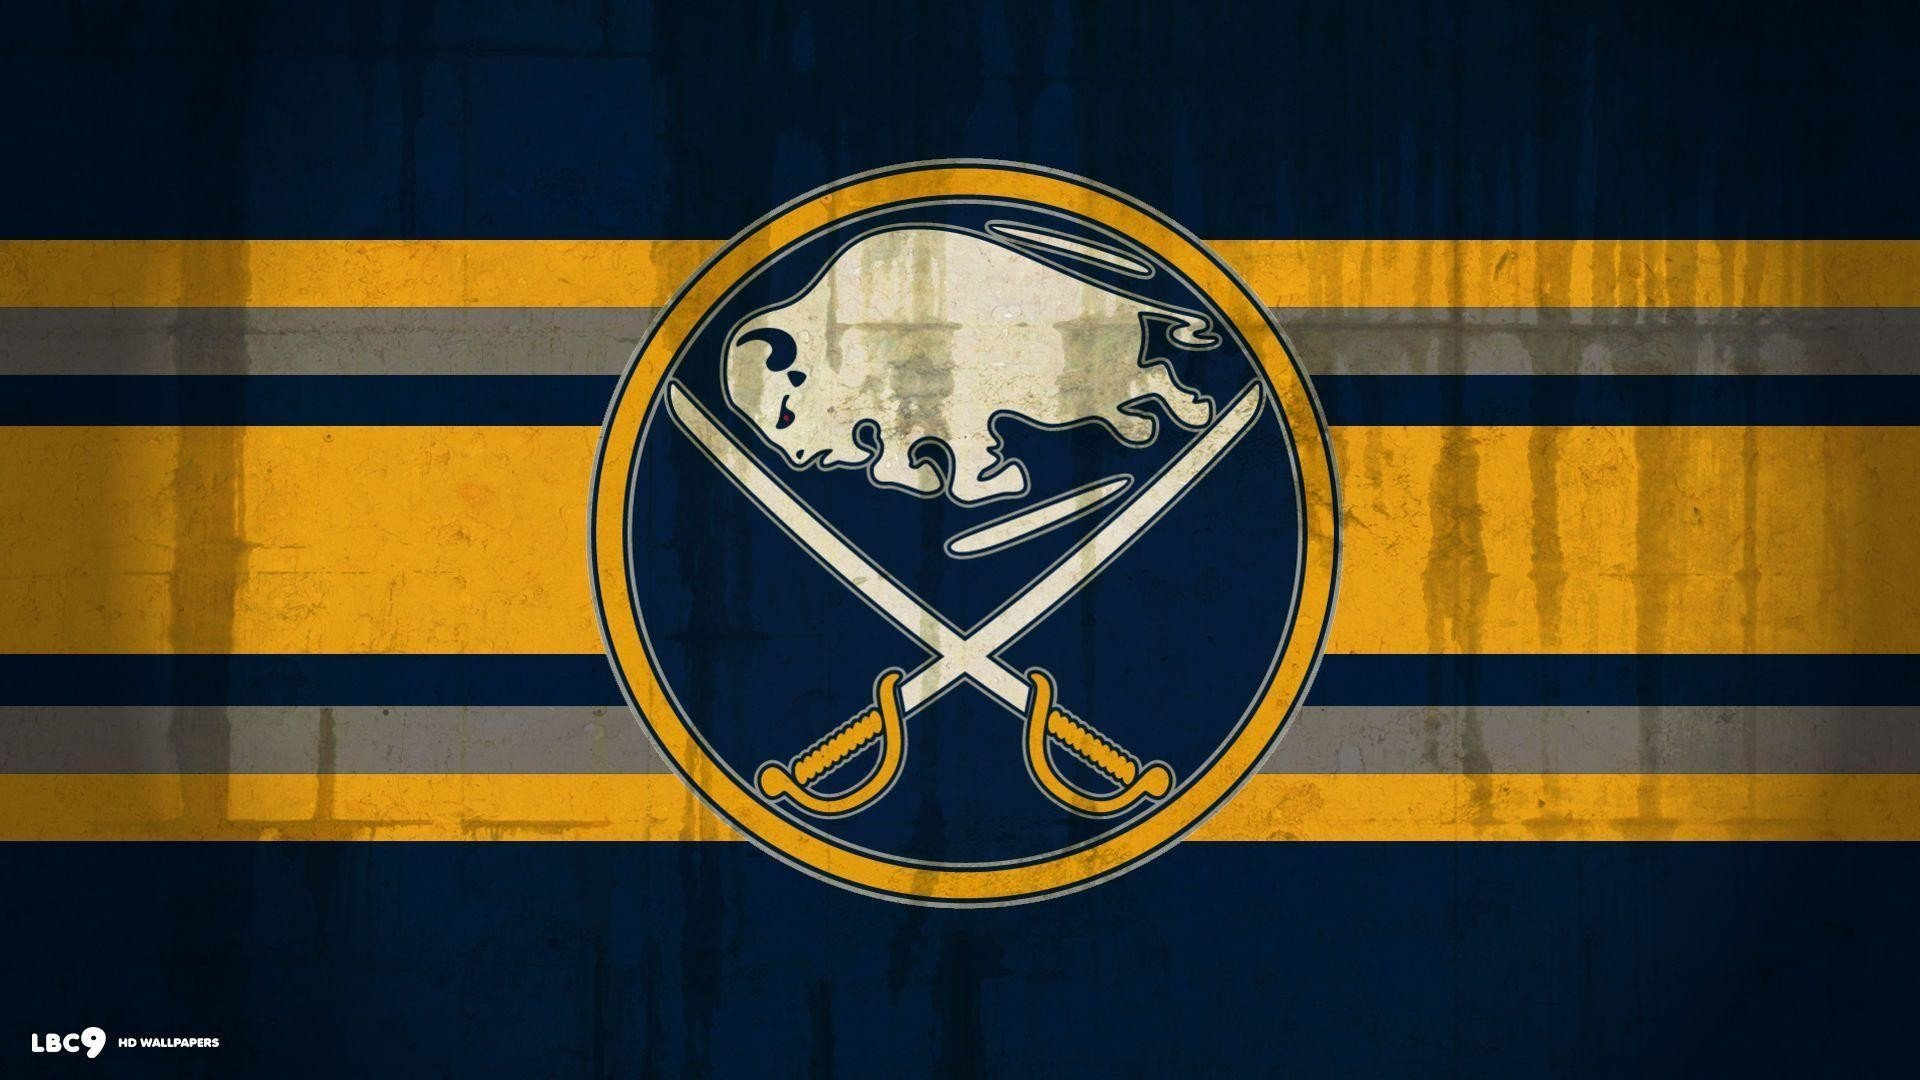 Sabres Wallpaper the best 62 images in 2018 1920x1080